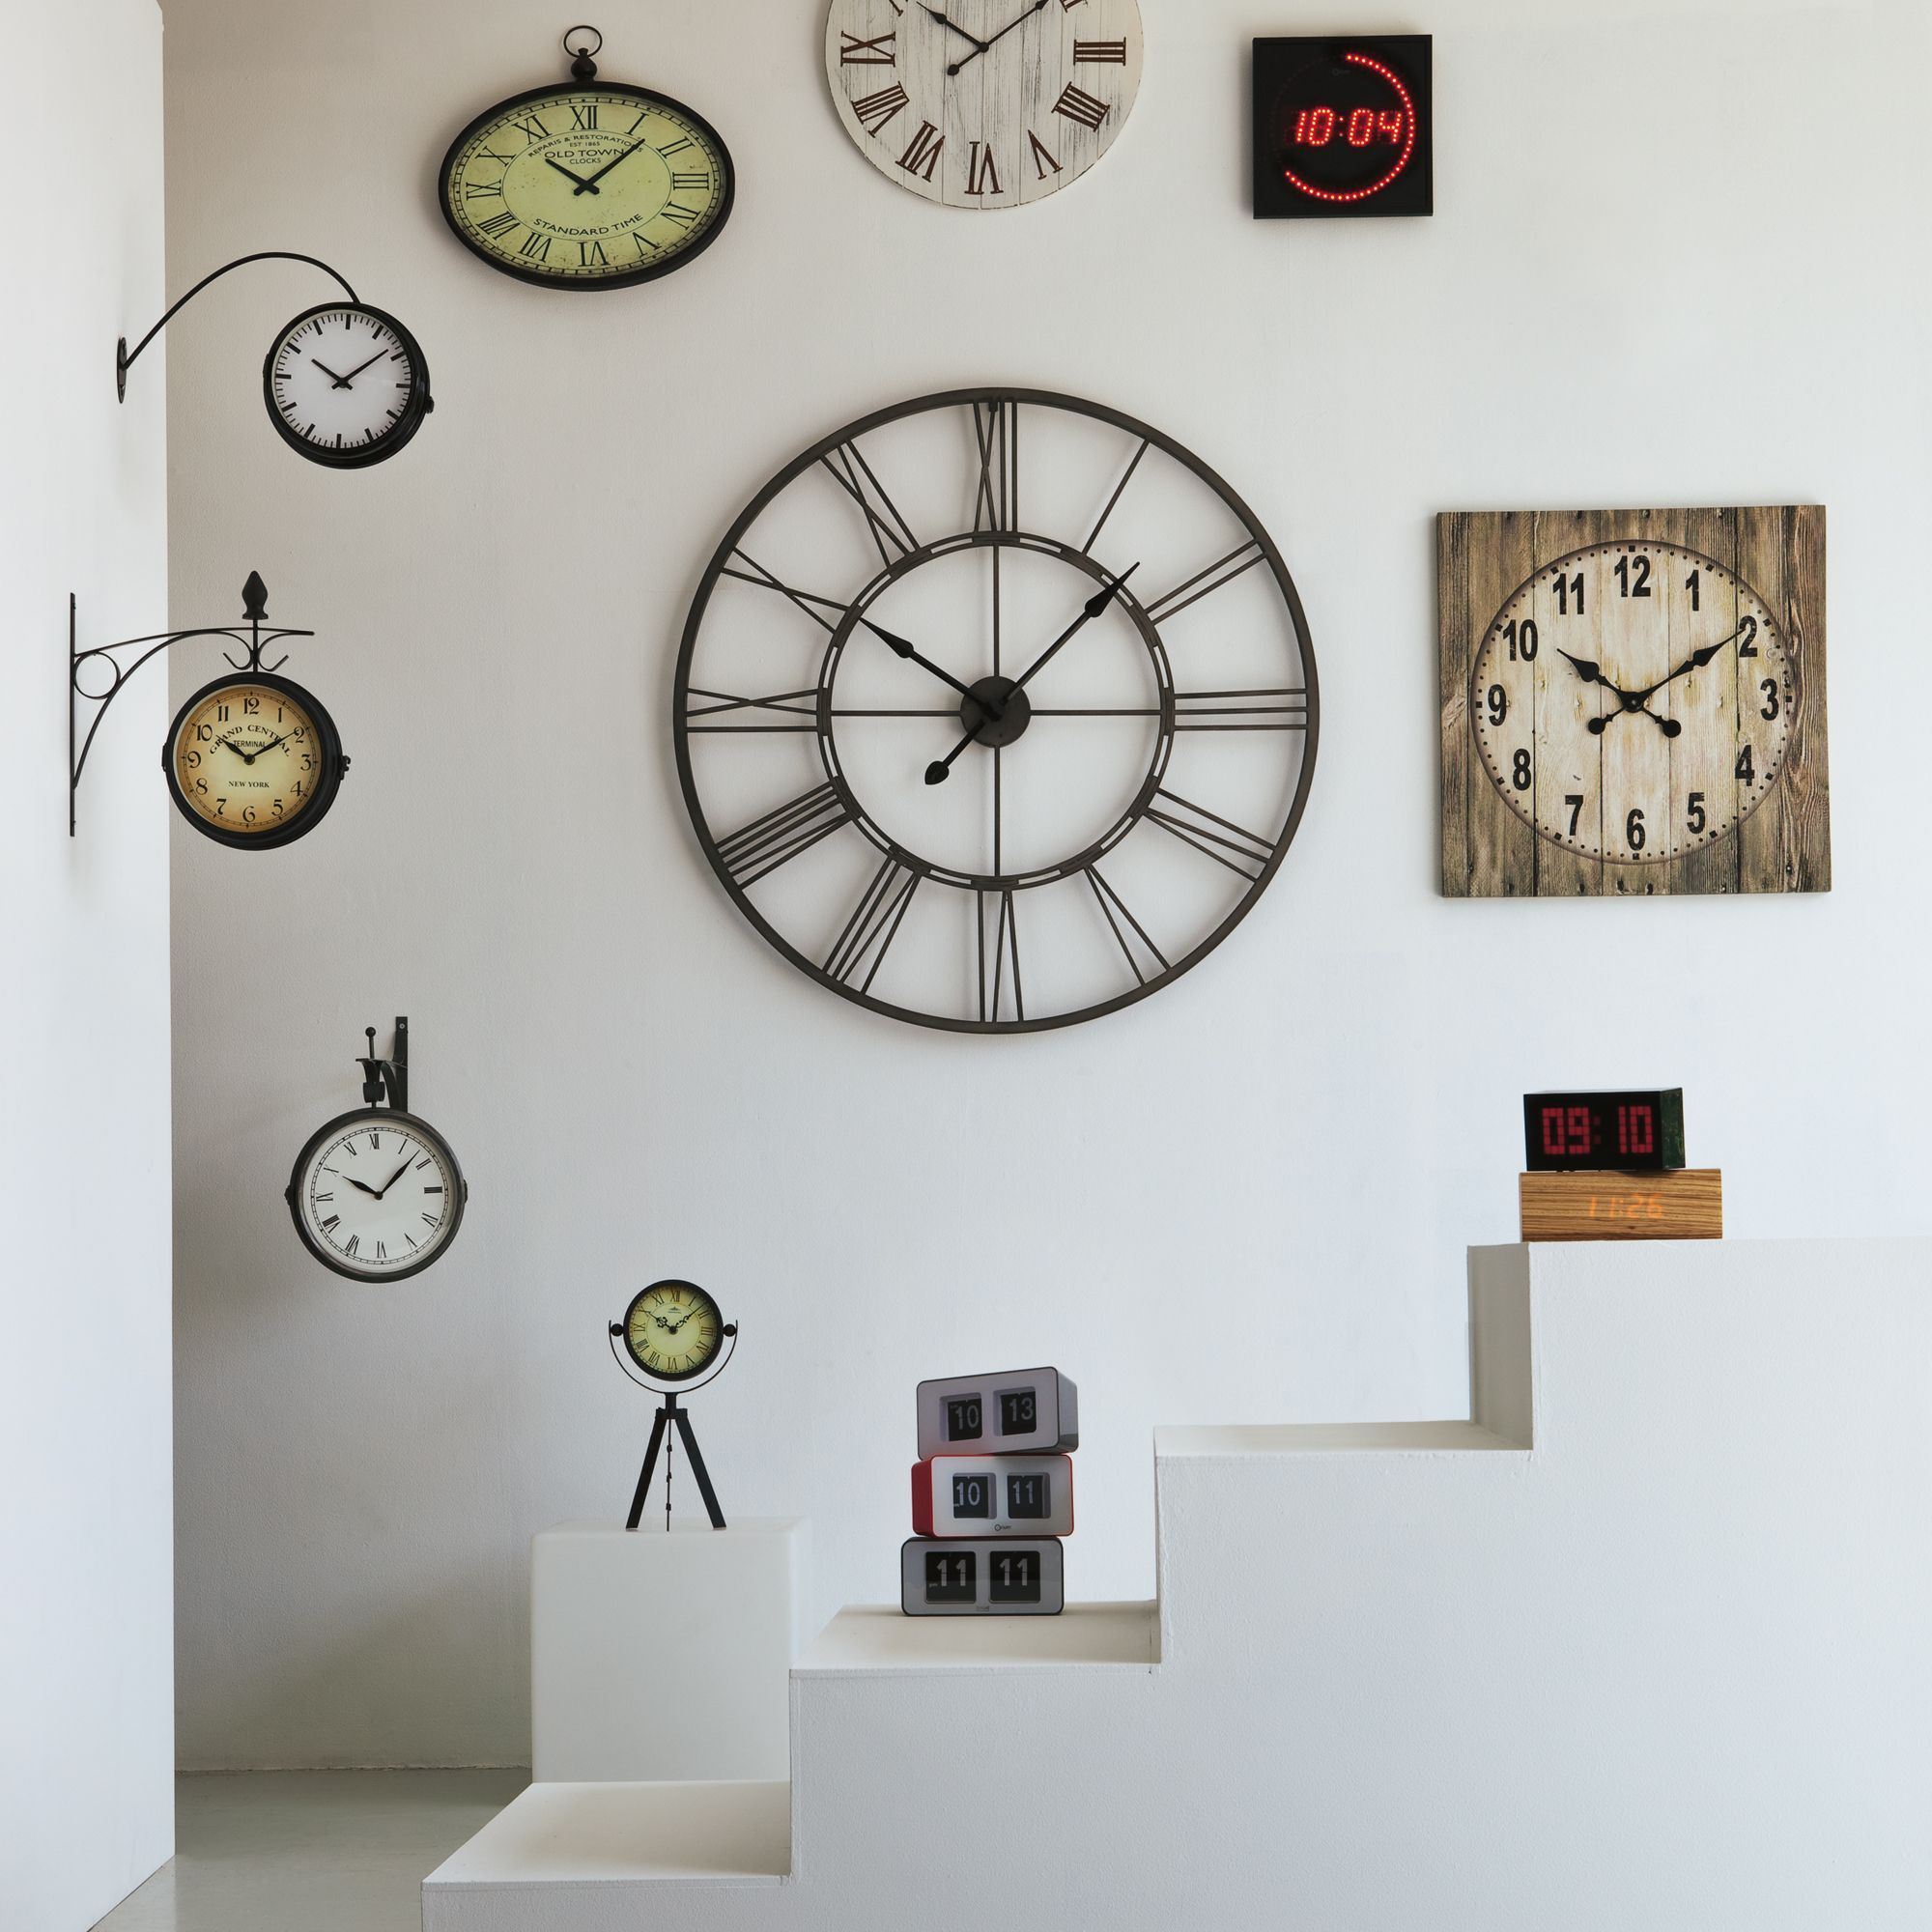 myron horloges murales alin a et horloge. Black Bedroom Furniture Sets. Home Design Ideas